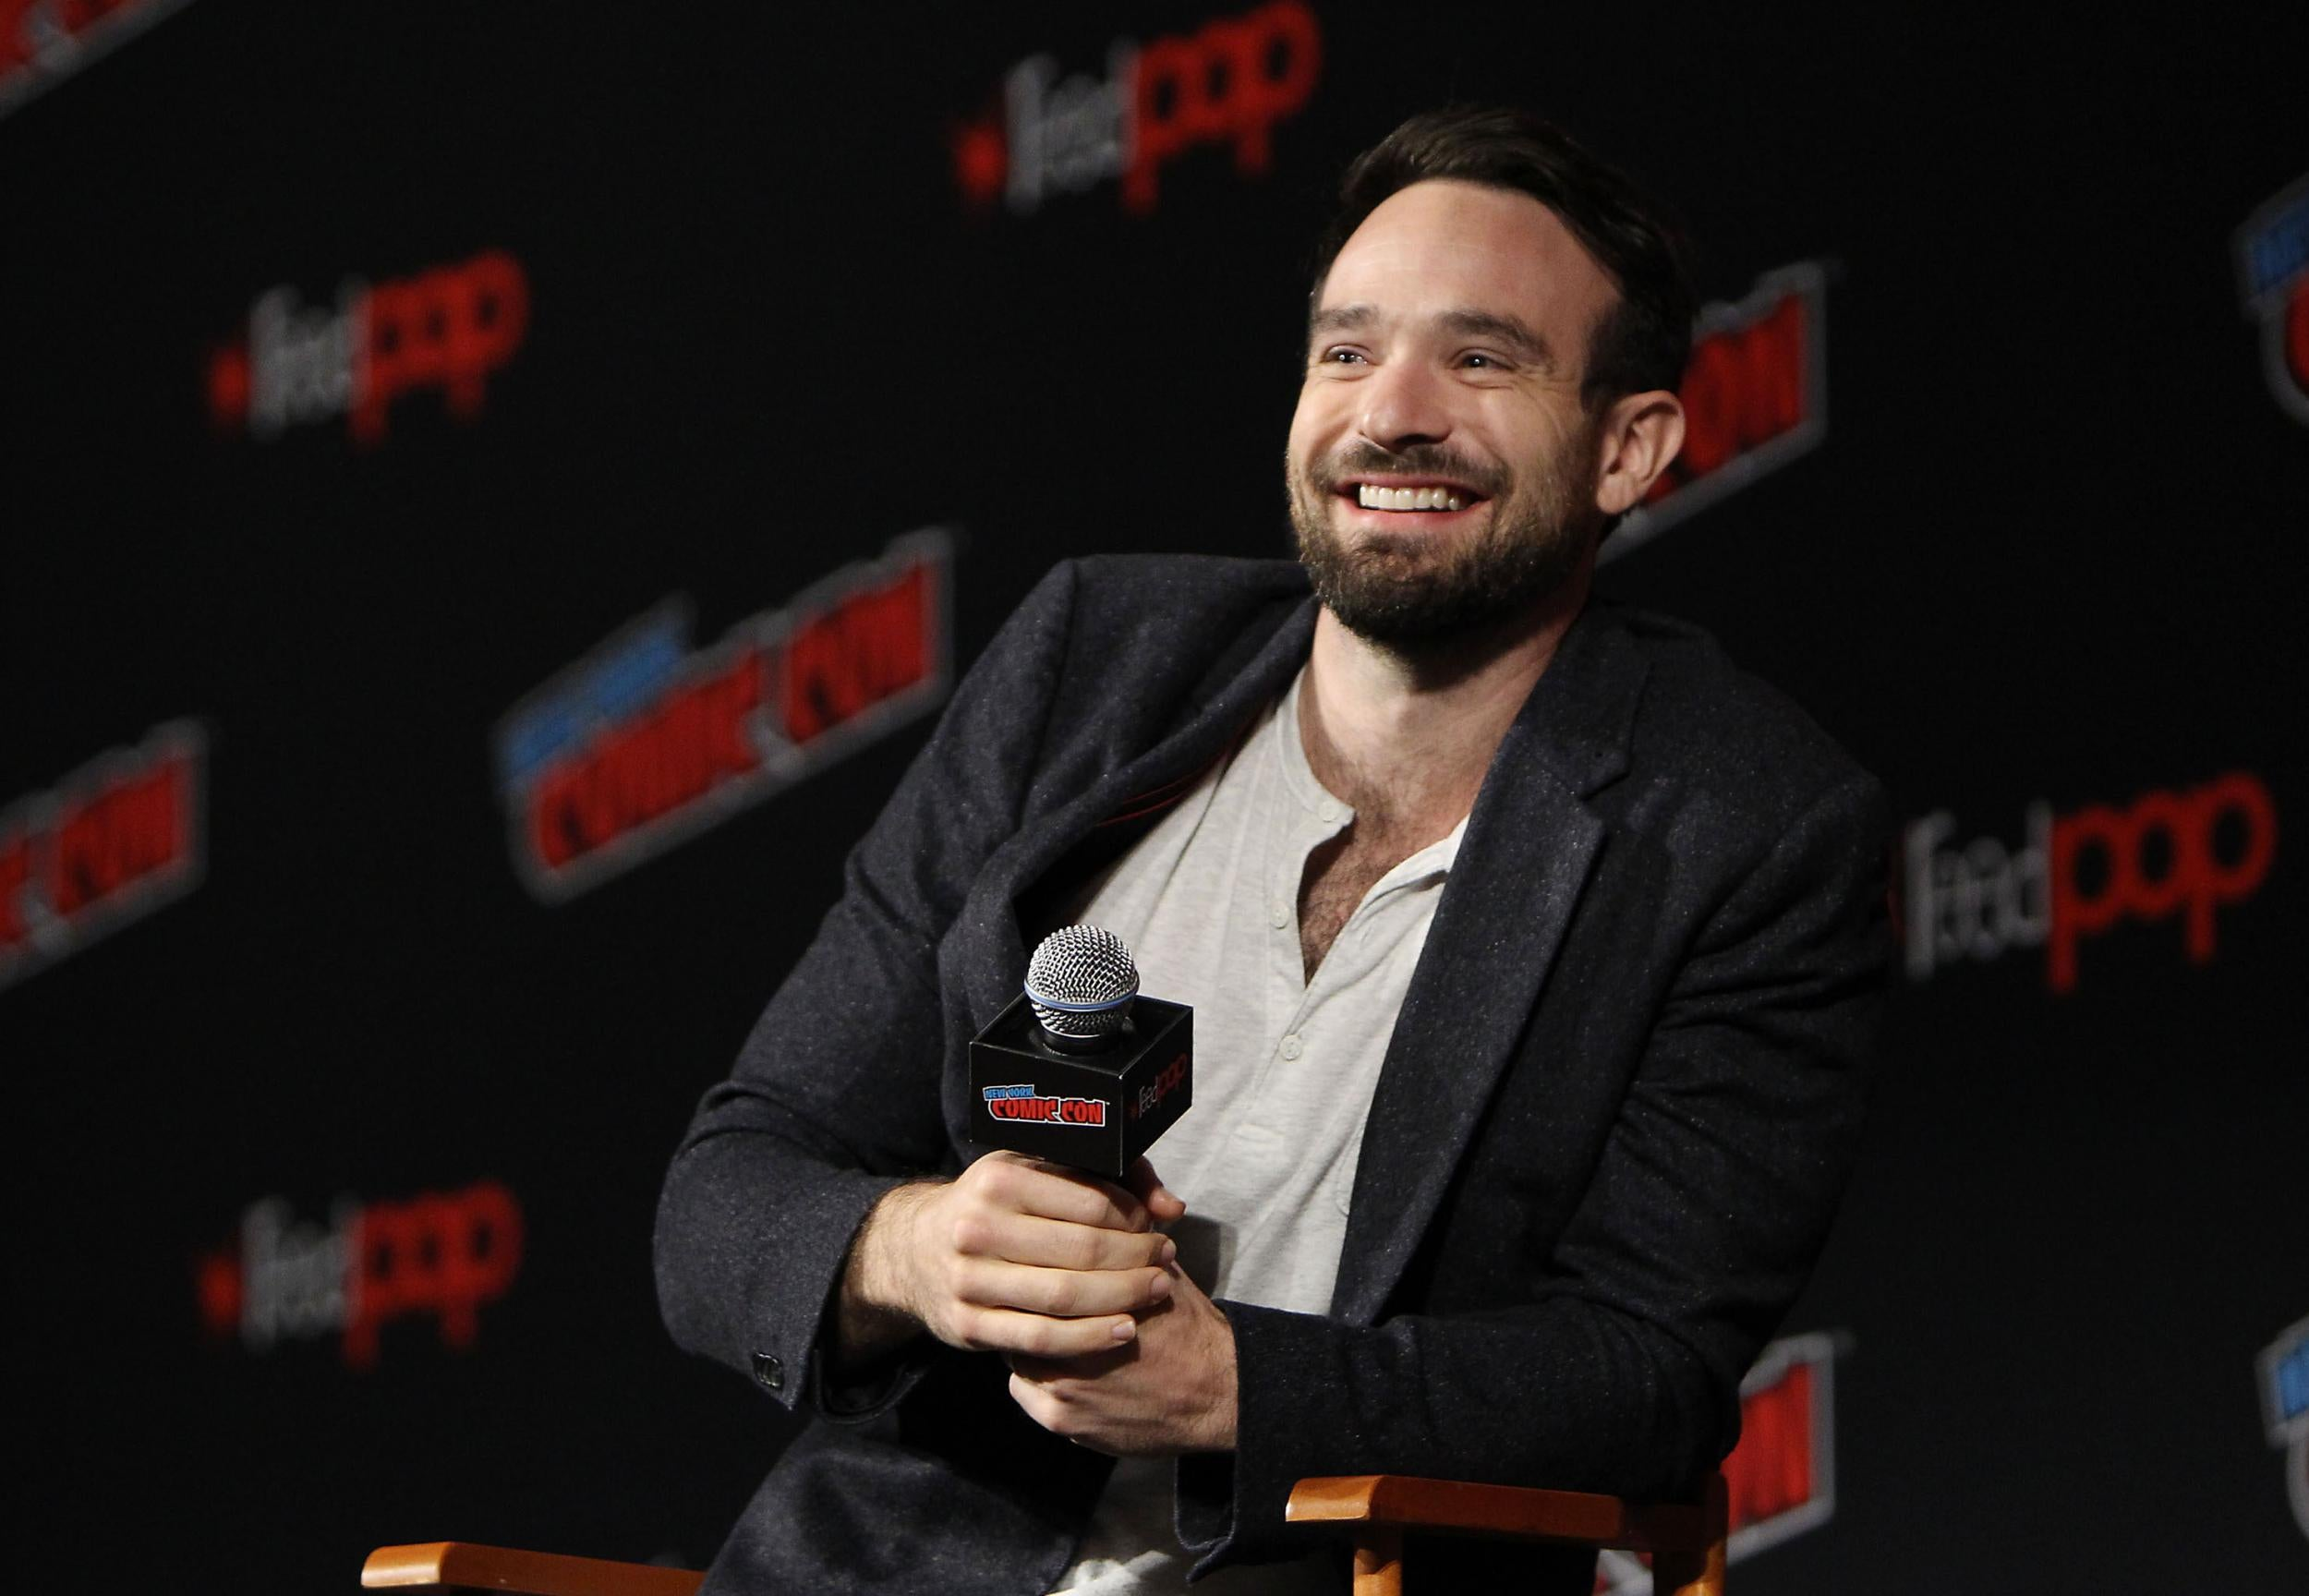 eb51695b42b Charlie Cox interview   Maybe I m not good enough to play Bond ...